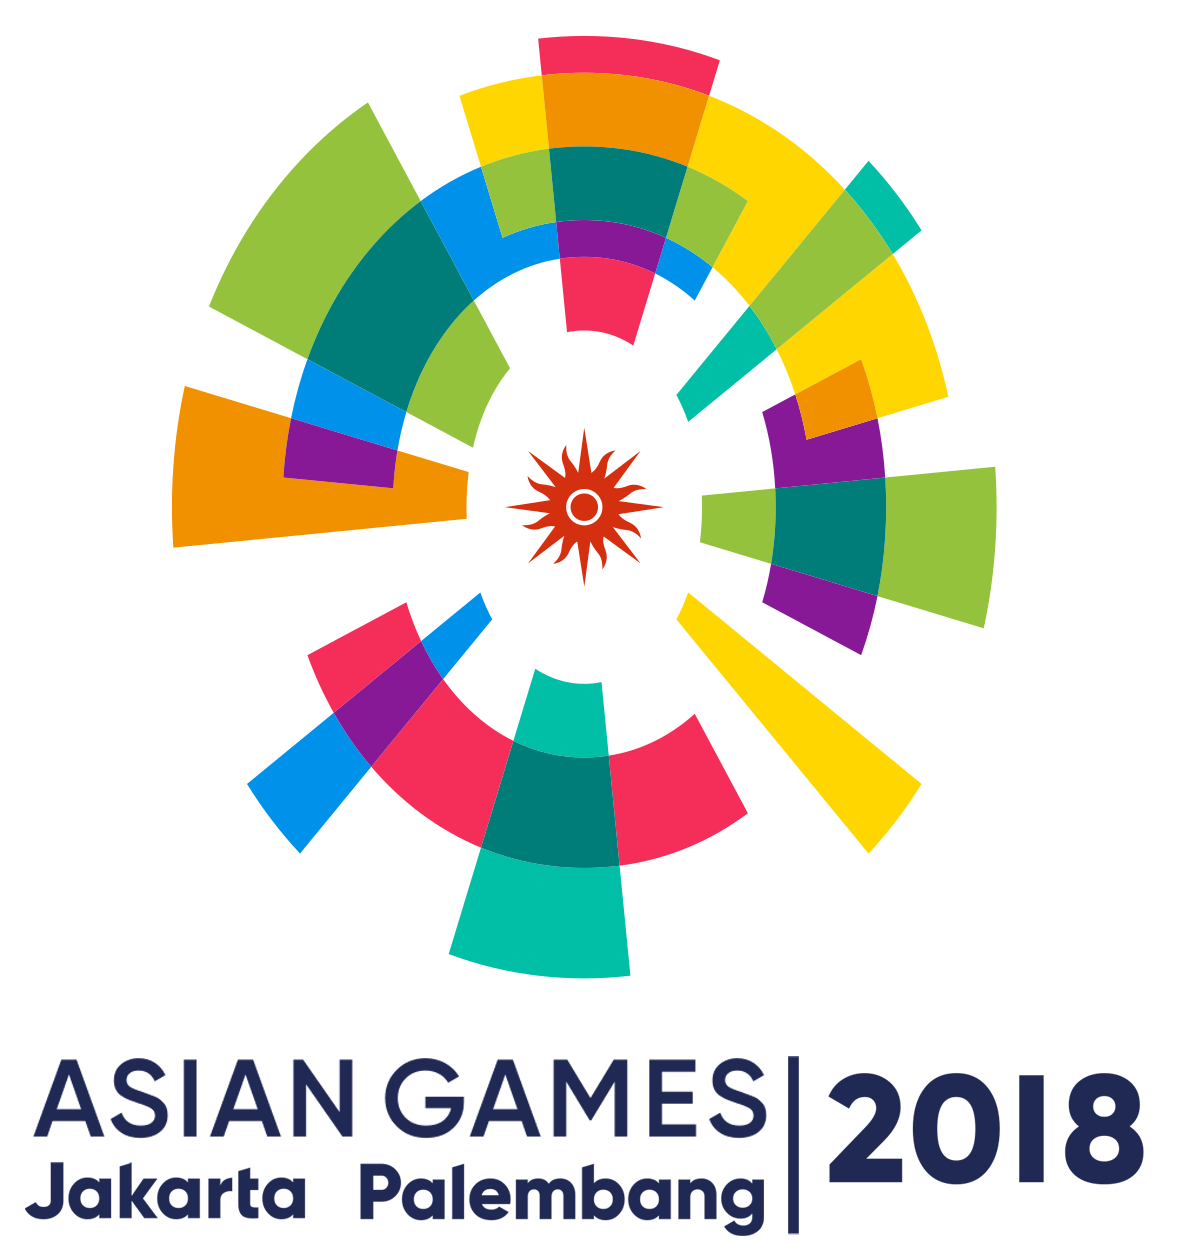 Asian Games Palembang  Travel Package Dn Tour From Bali Tour From Bali